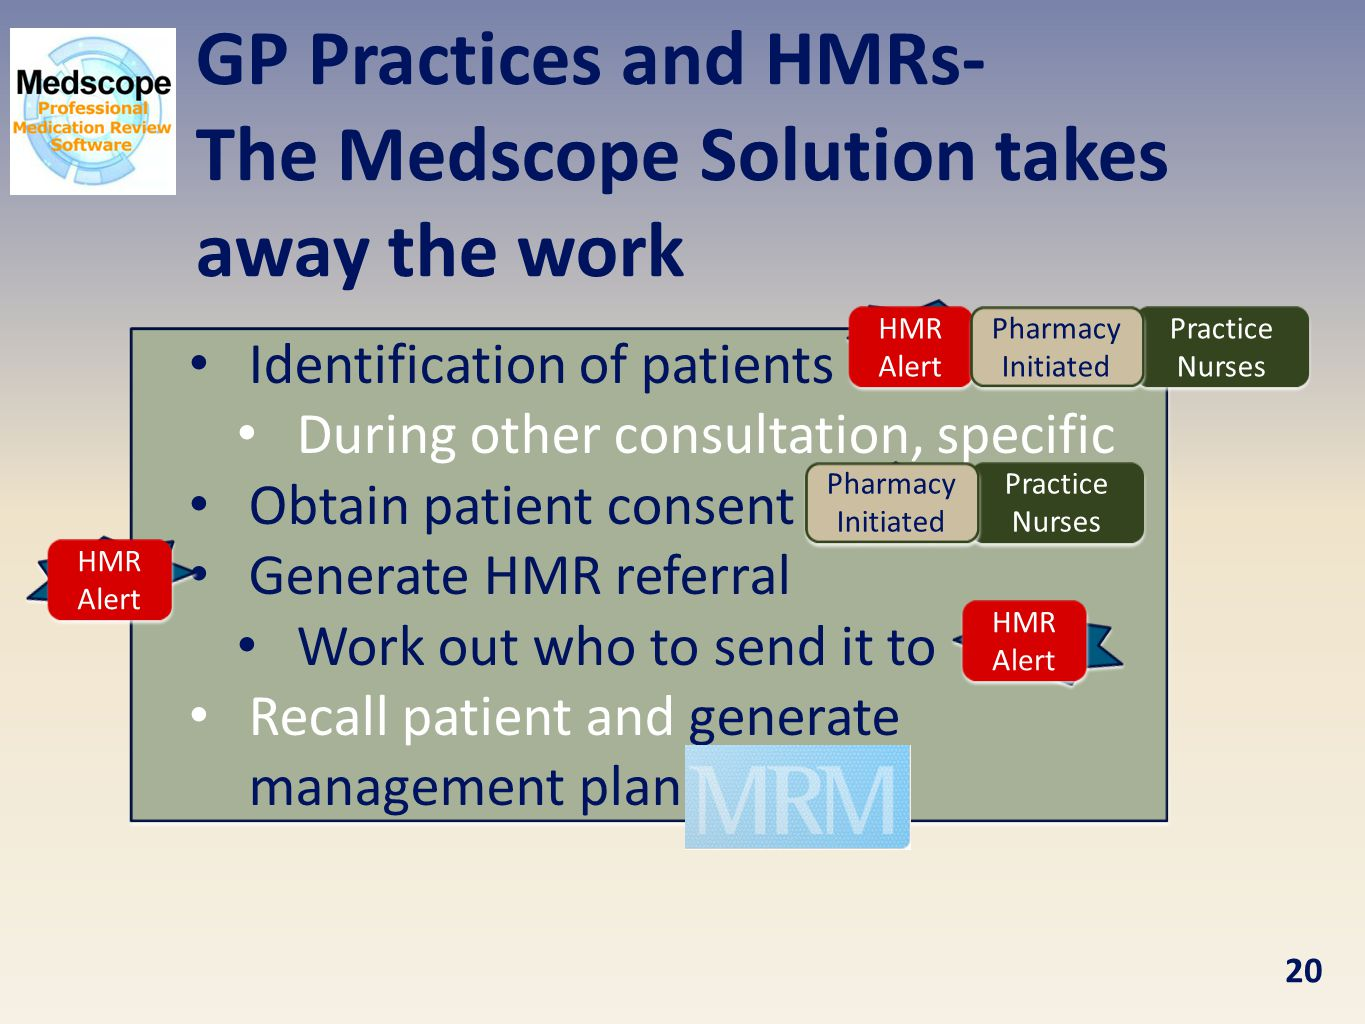 GP Practices and HMRs- The Medscope Solution takes away the work